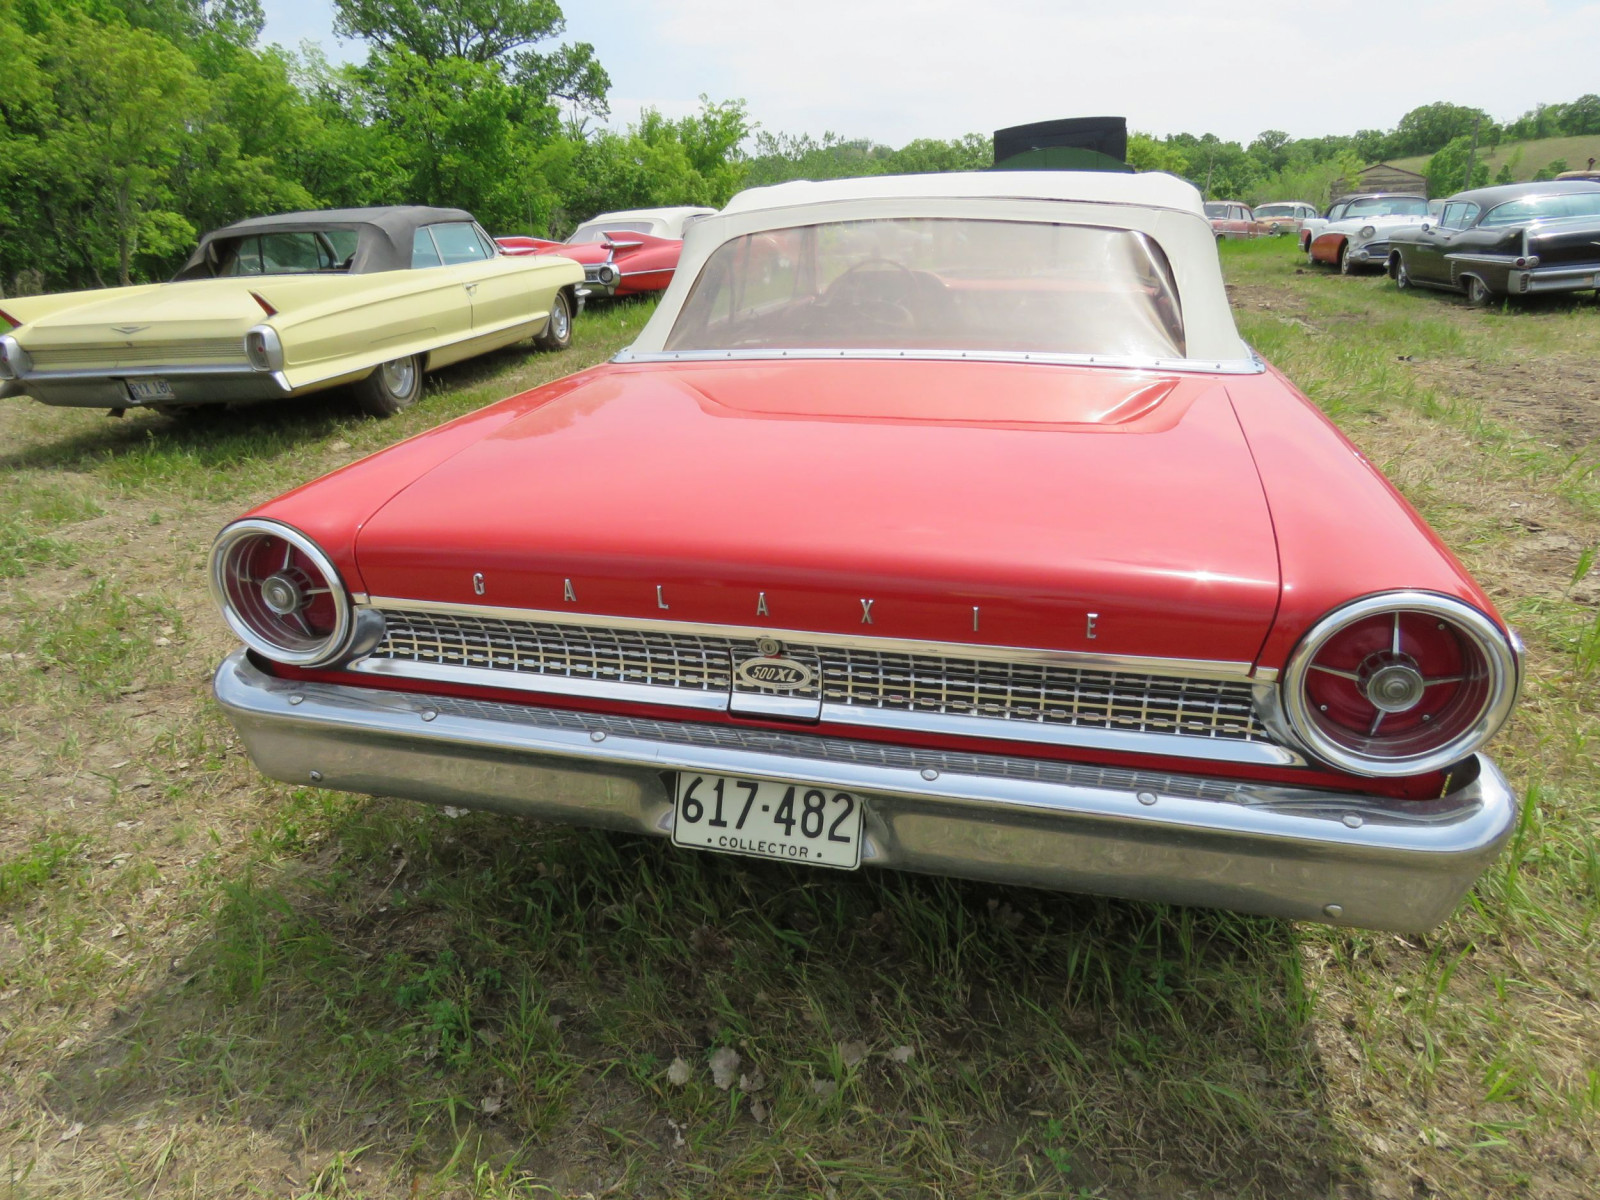 1963 Ford Galaxie 500XL Convertible 3G69Z183135 - Image 6